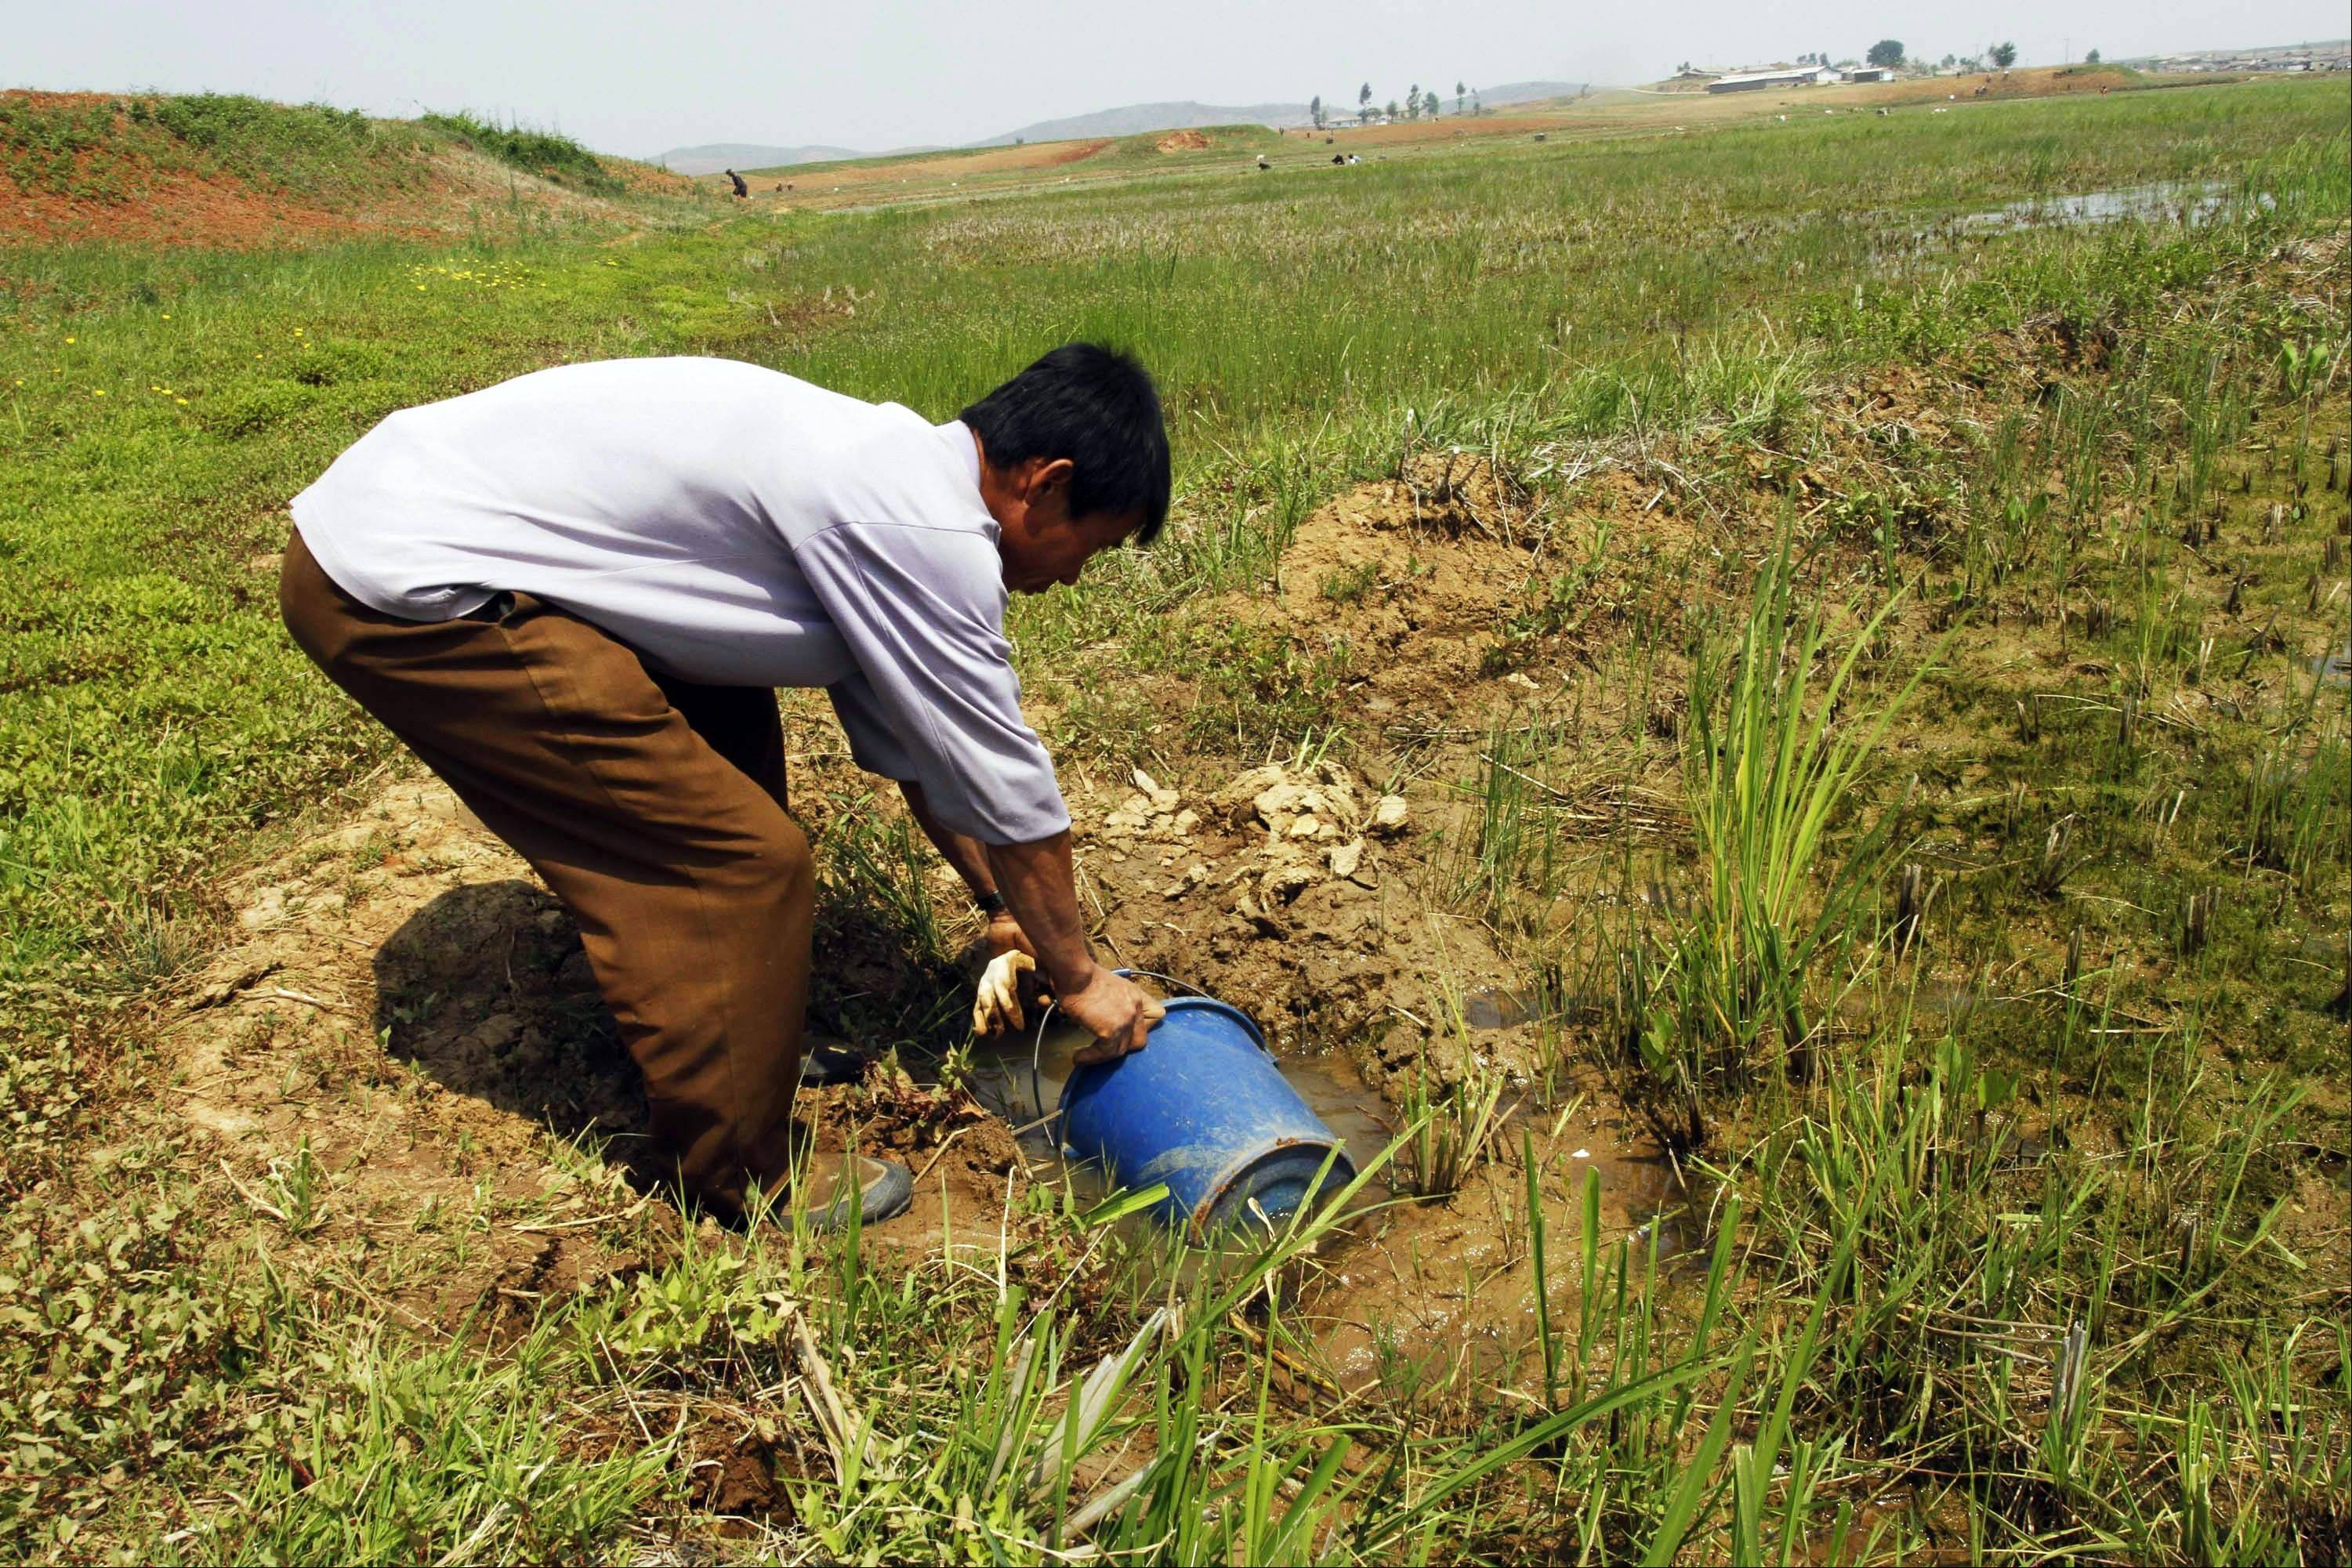 On May 25, a North Korean farmer gathers water as he tries to irrigate a field at the Tokhae cooperative farm on the outskirts of Nampho, North Korea. North Korea is reporting a serious drought that could worsen already critical food shortages, but help is unlikely to come from the United States and South Korea following Pyongyang's widely criticized rocket launch.